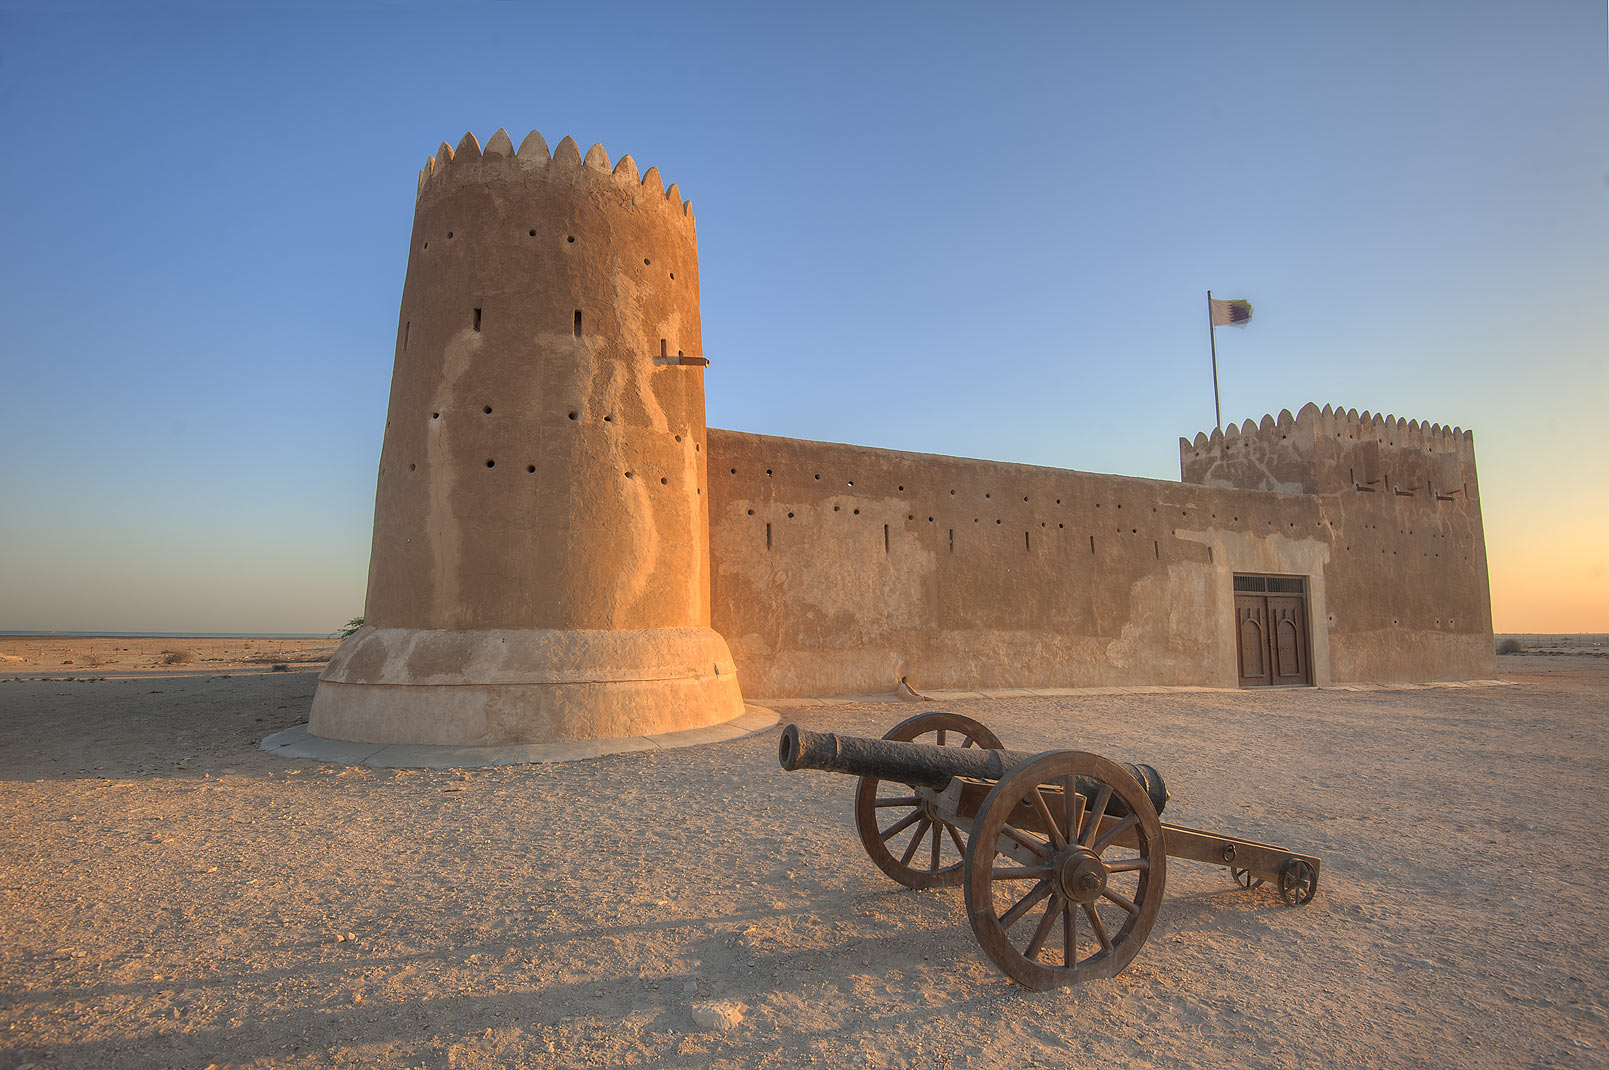 Northern Qatar  - Zubara Fort at sunrise. Northern Qatar